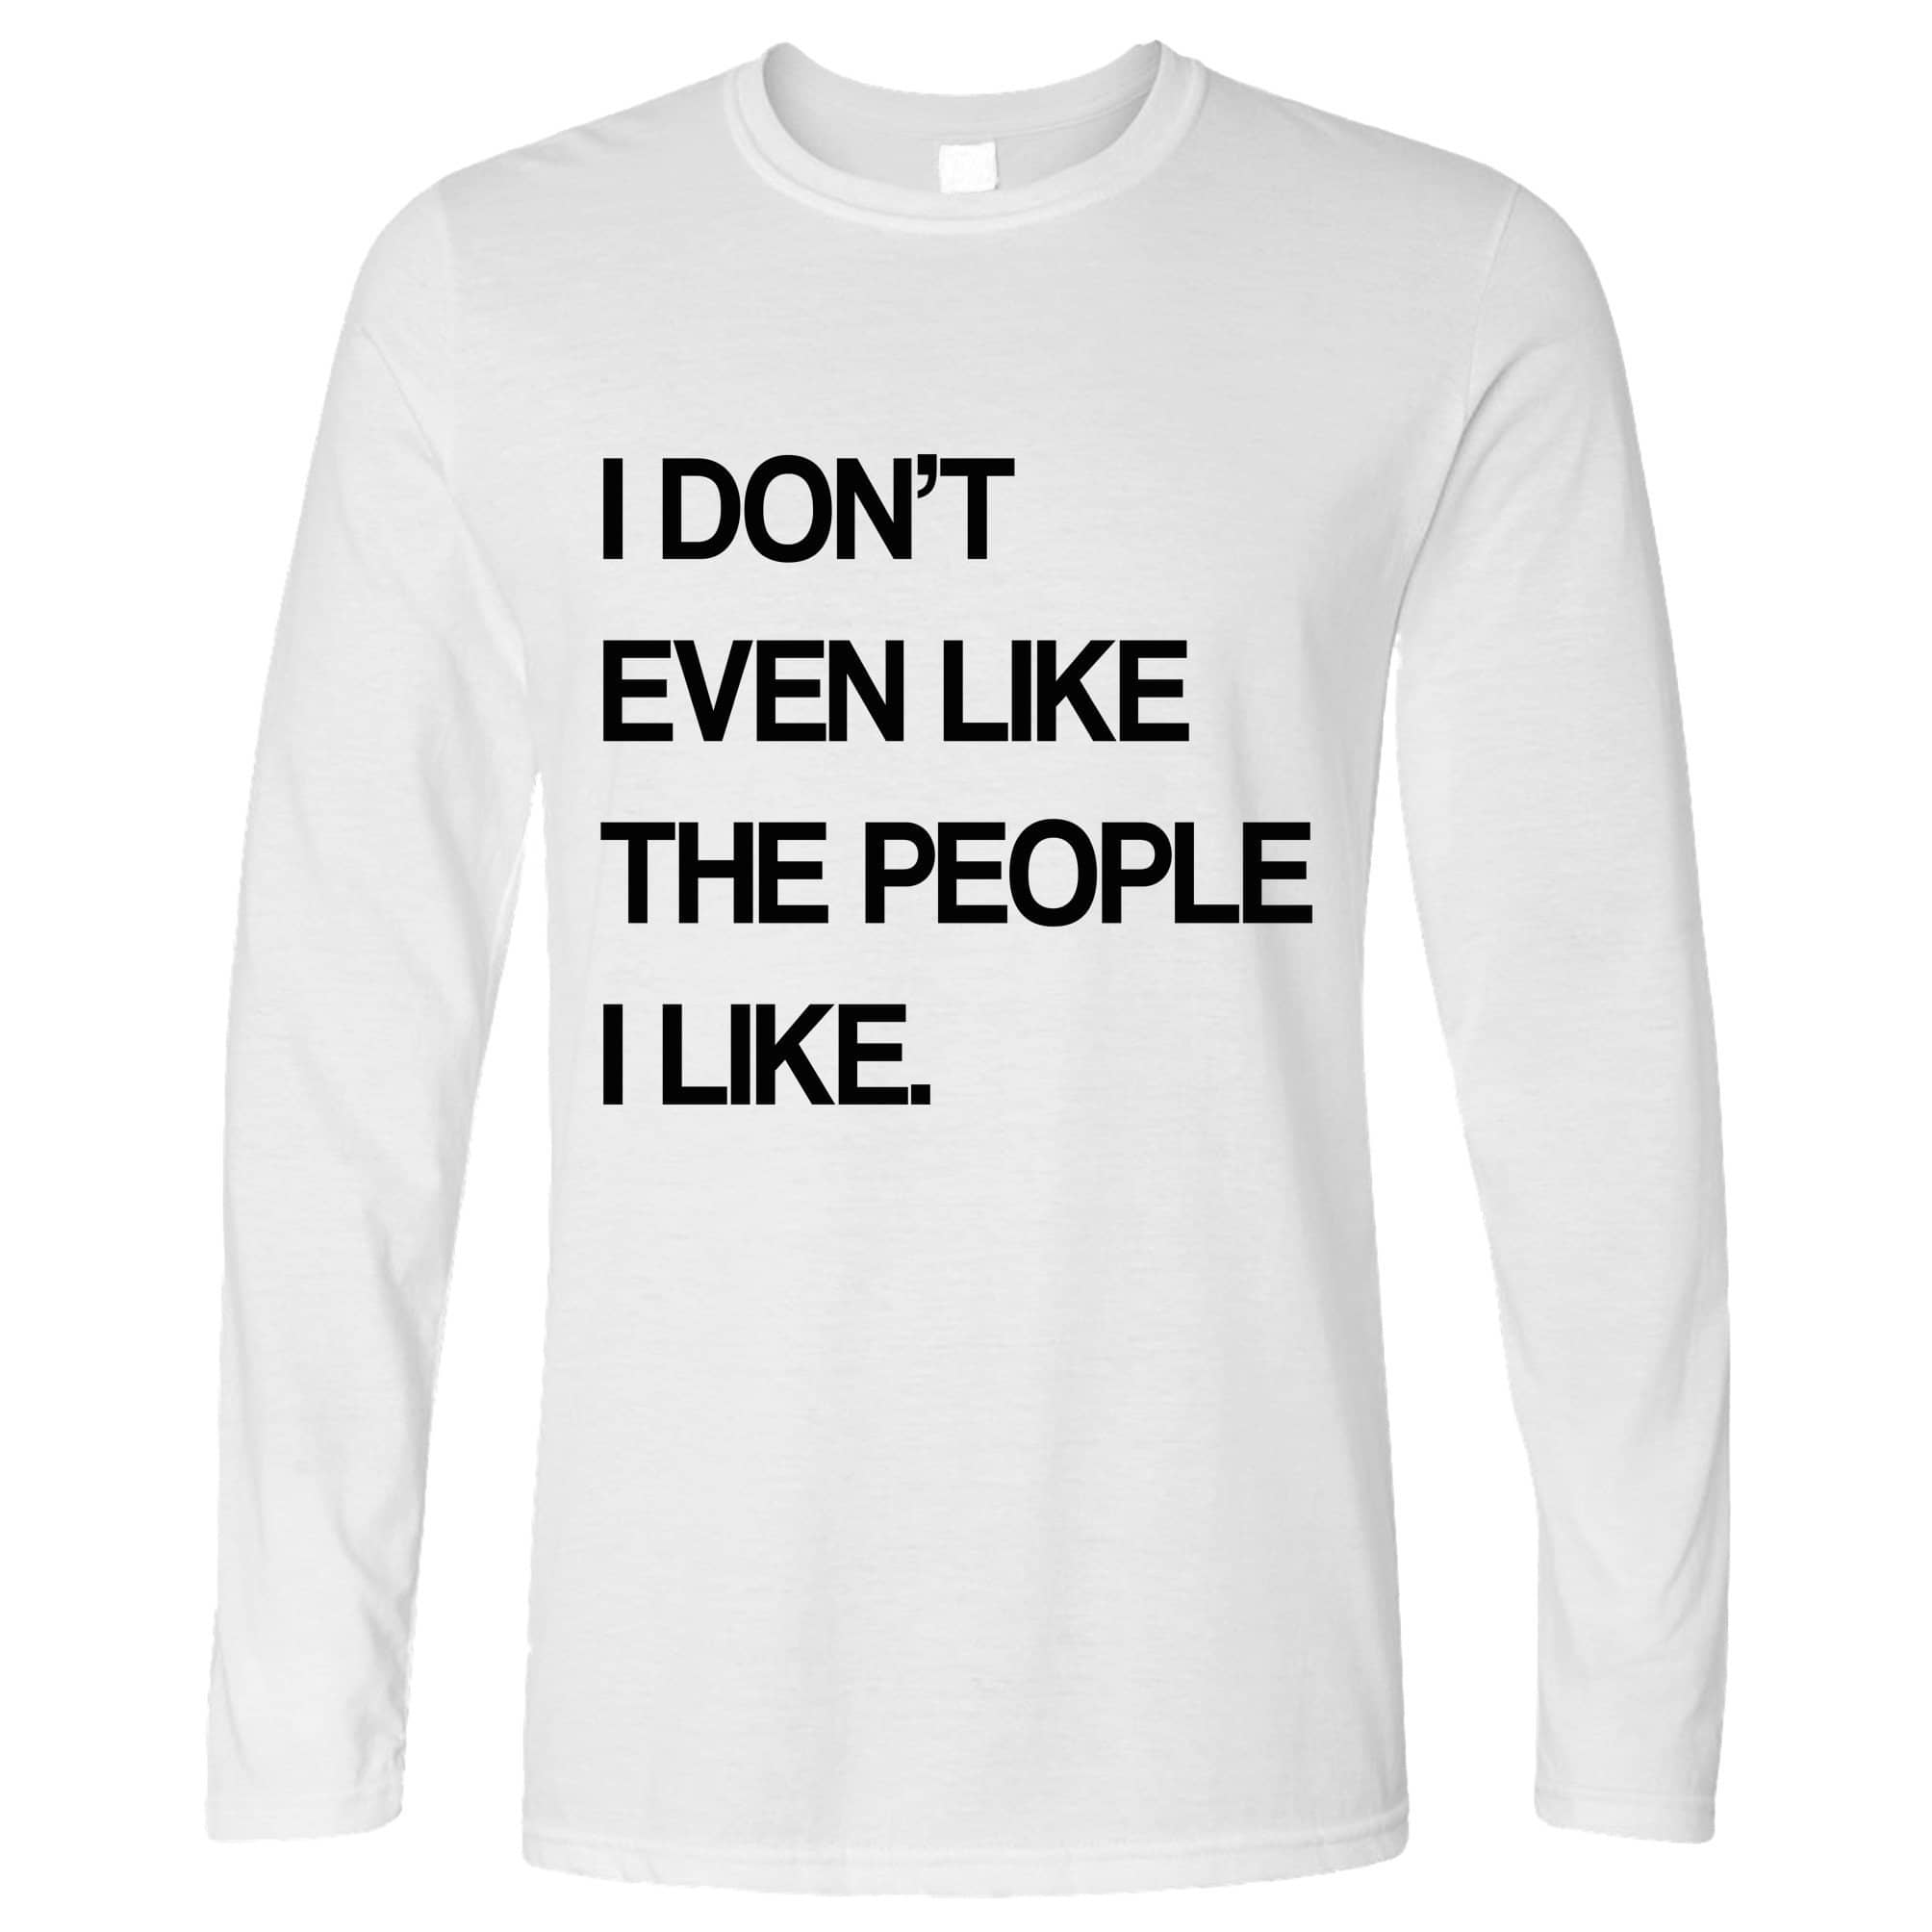 Joke Long Sleeve I Don't Even Like The People I Like T-Shirt